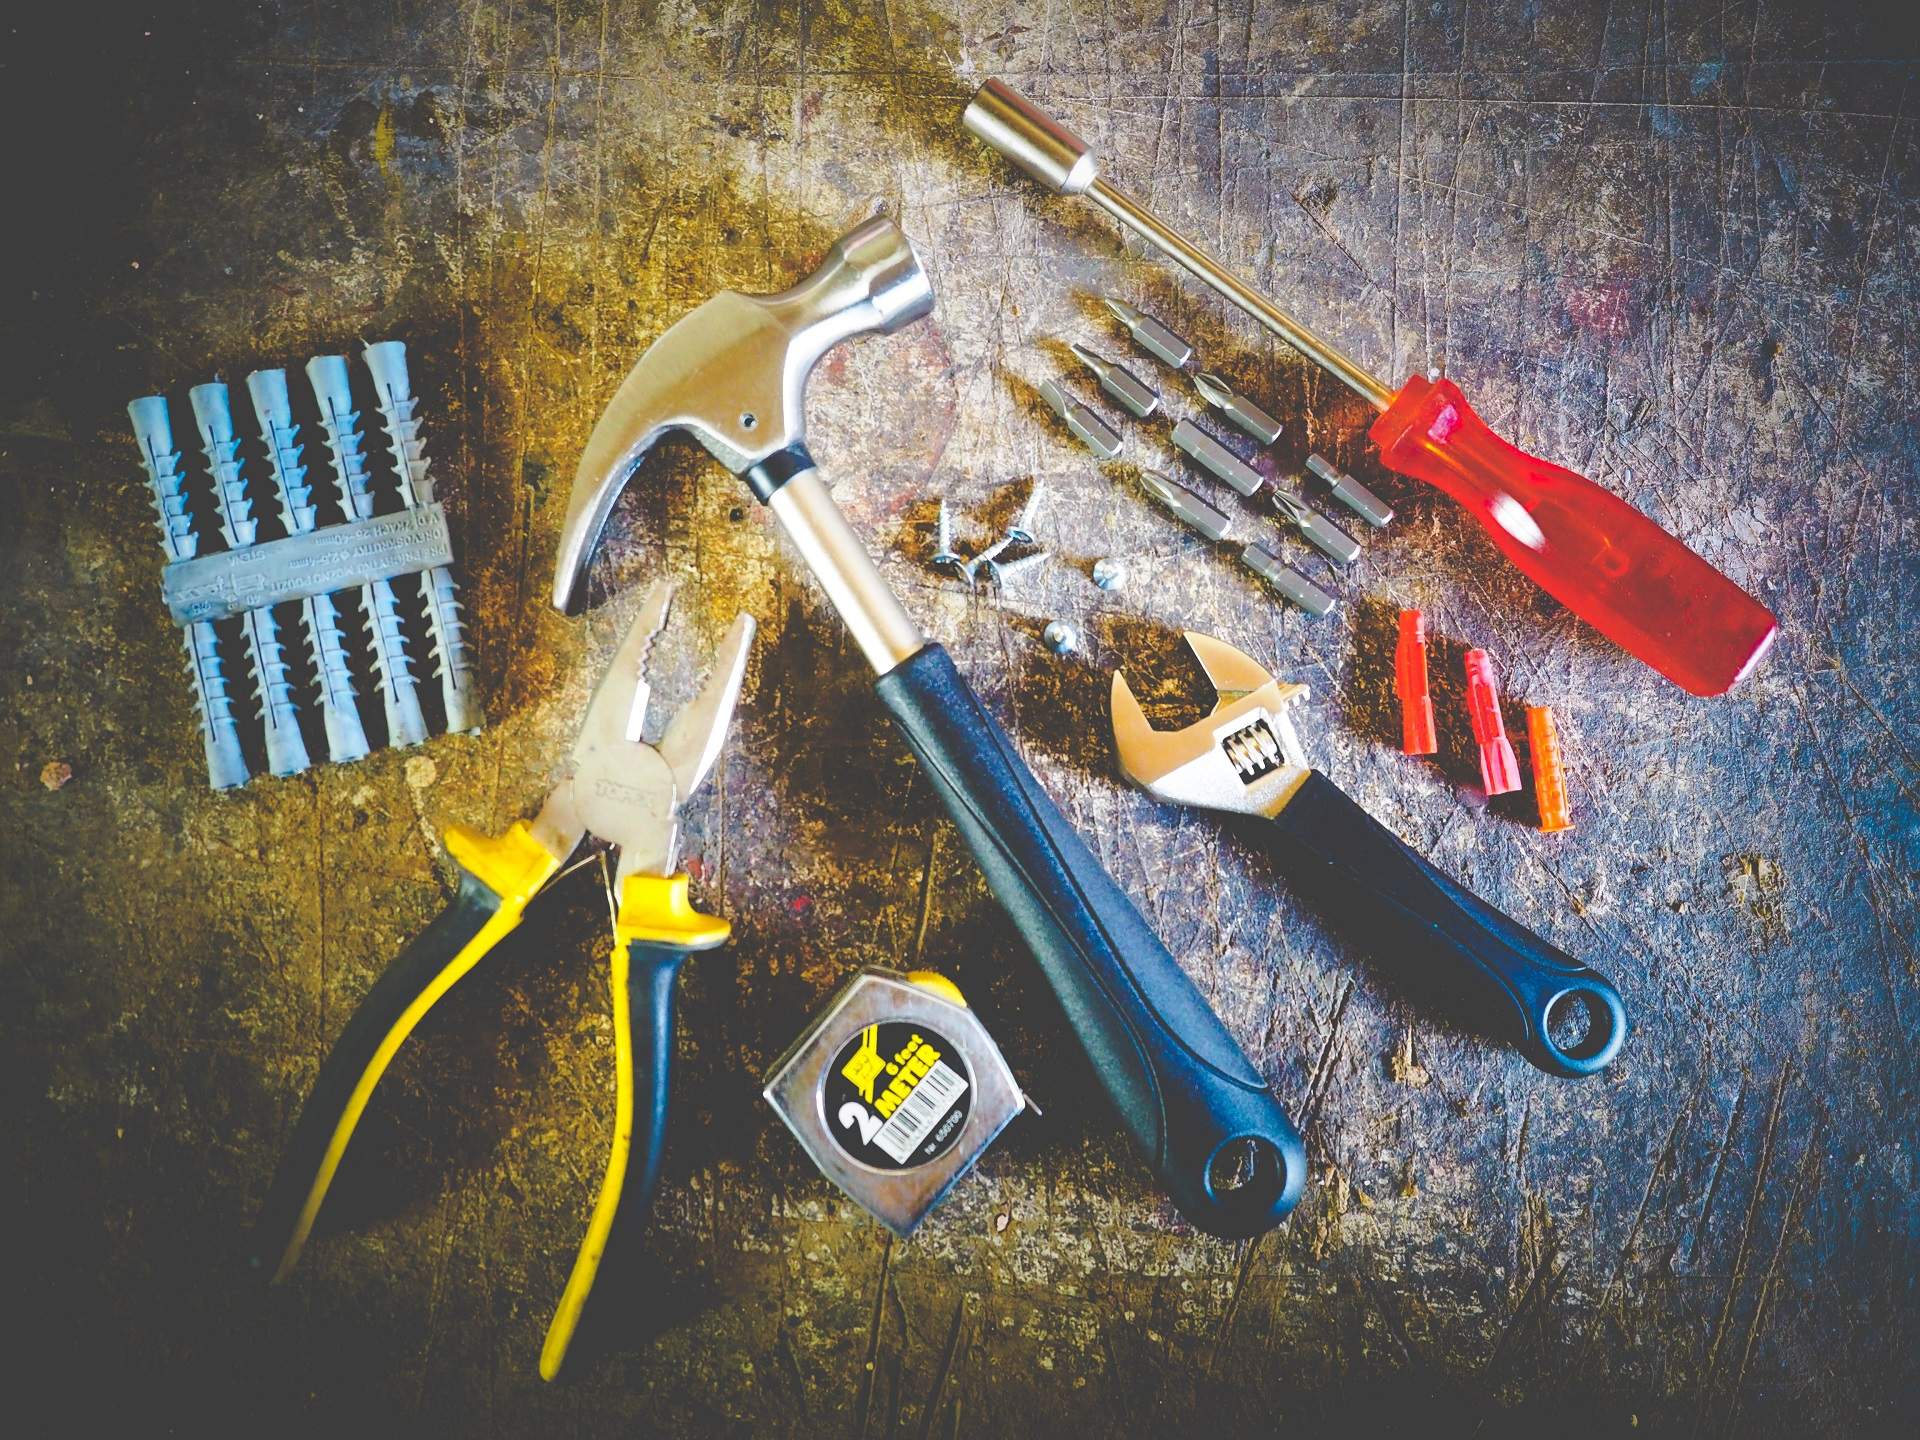 Investing in a tool kit is a household hack.